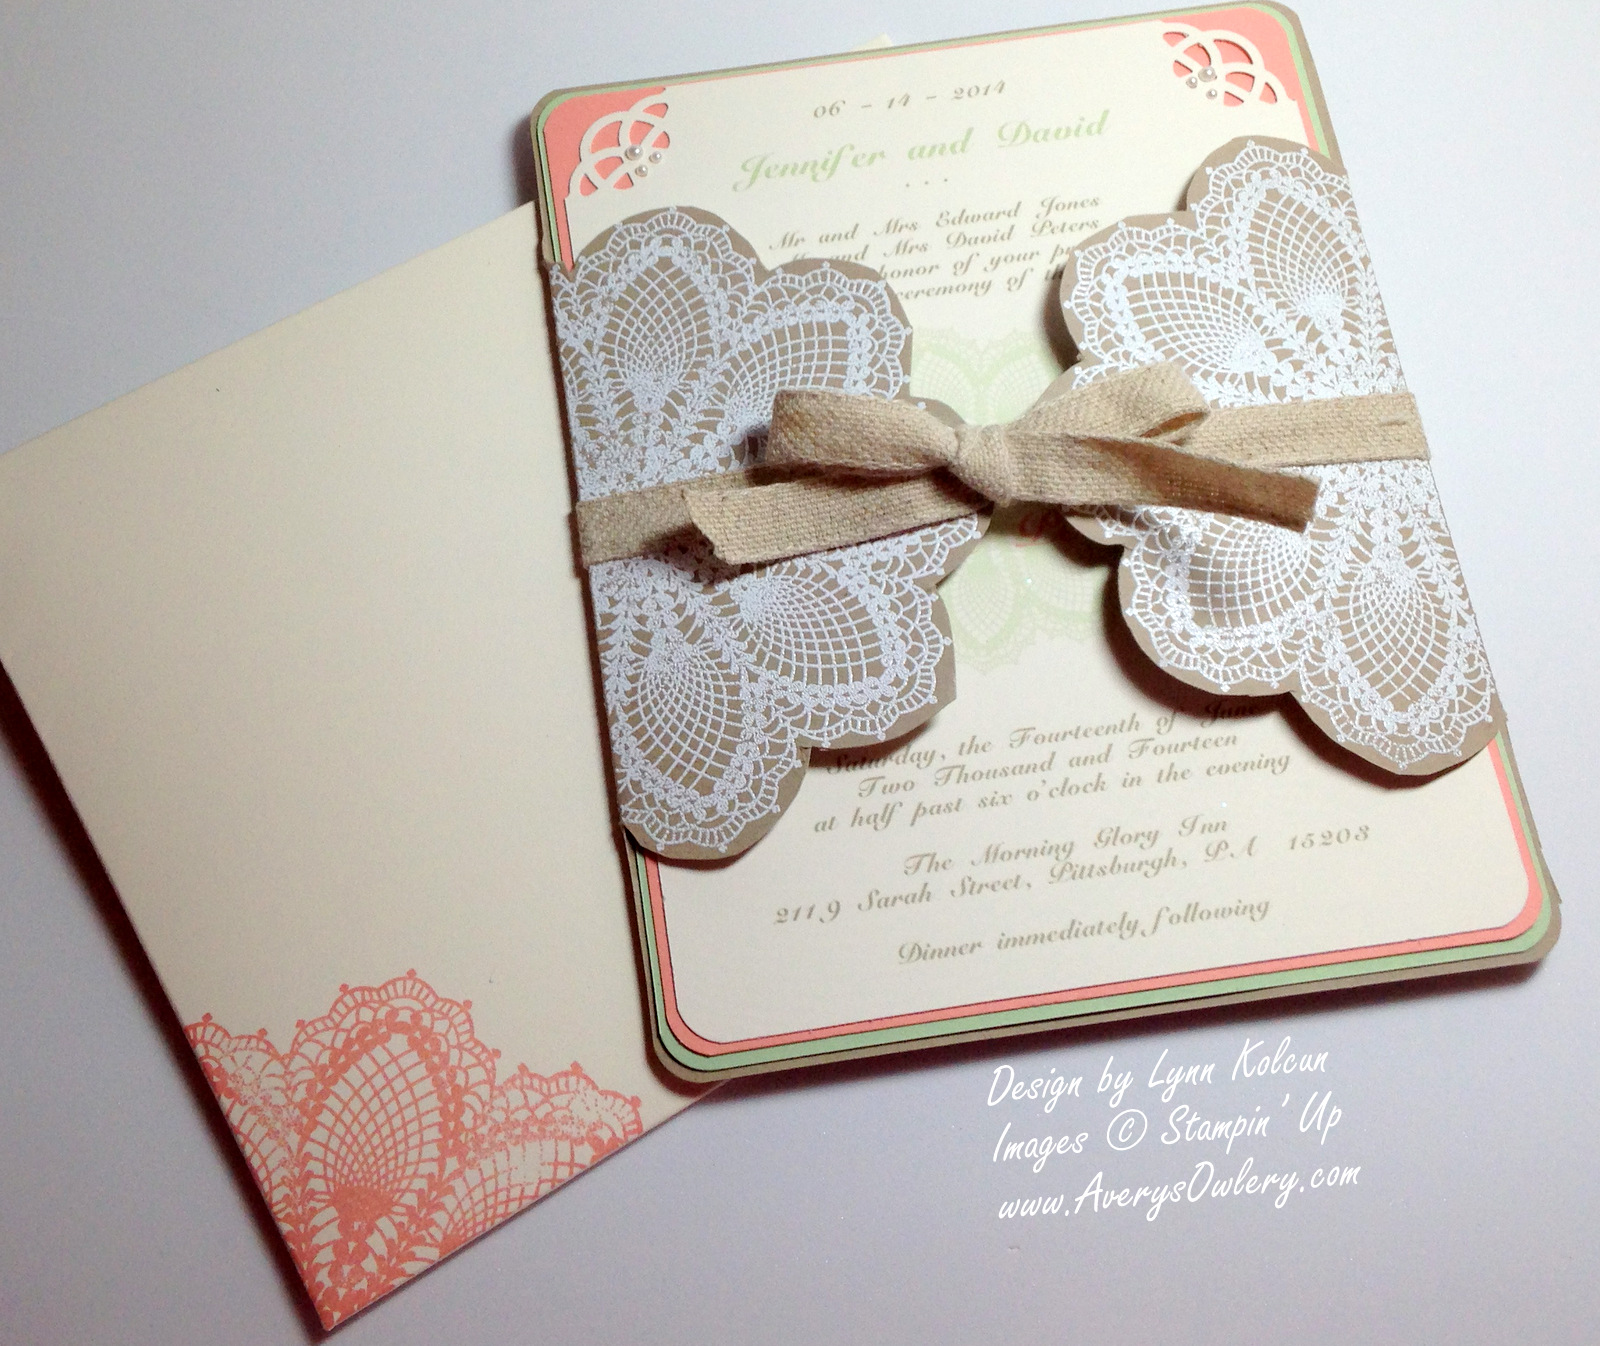 Day 3 of Wedding Week at the Owlery - Vintage Doily - Stamping with ...